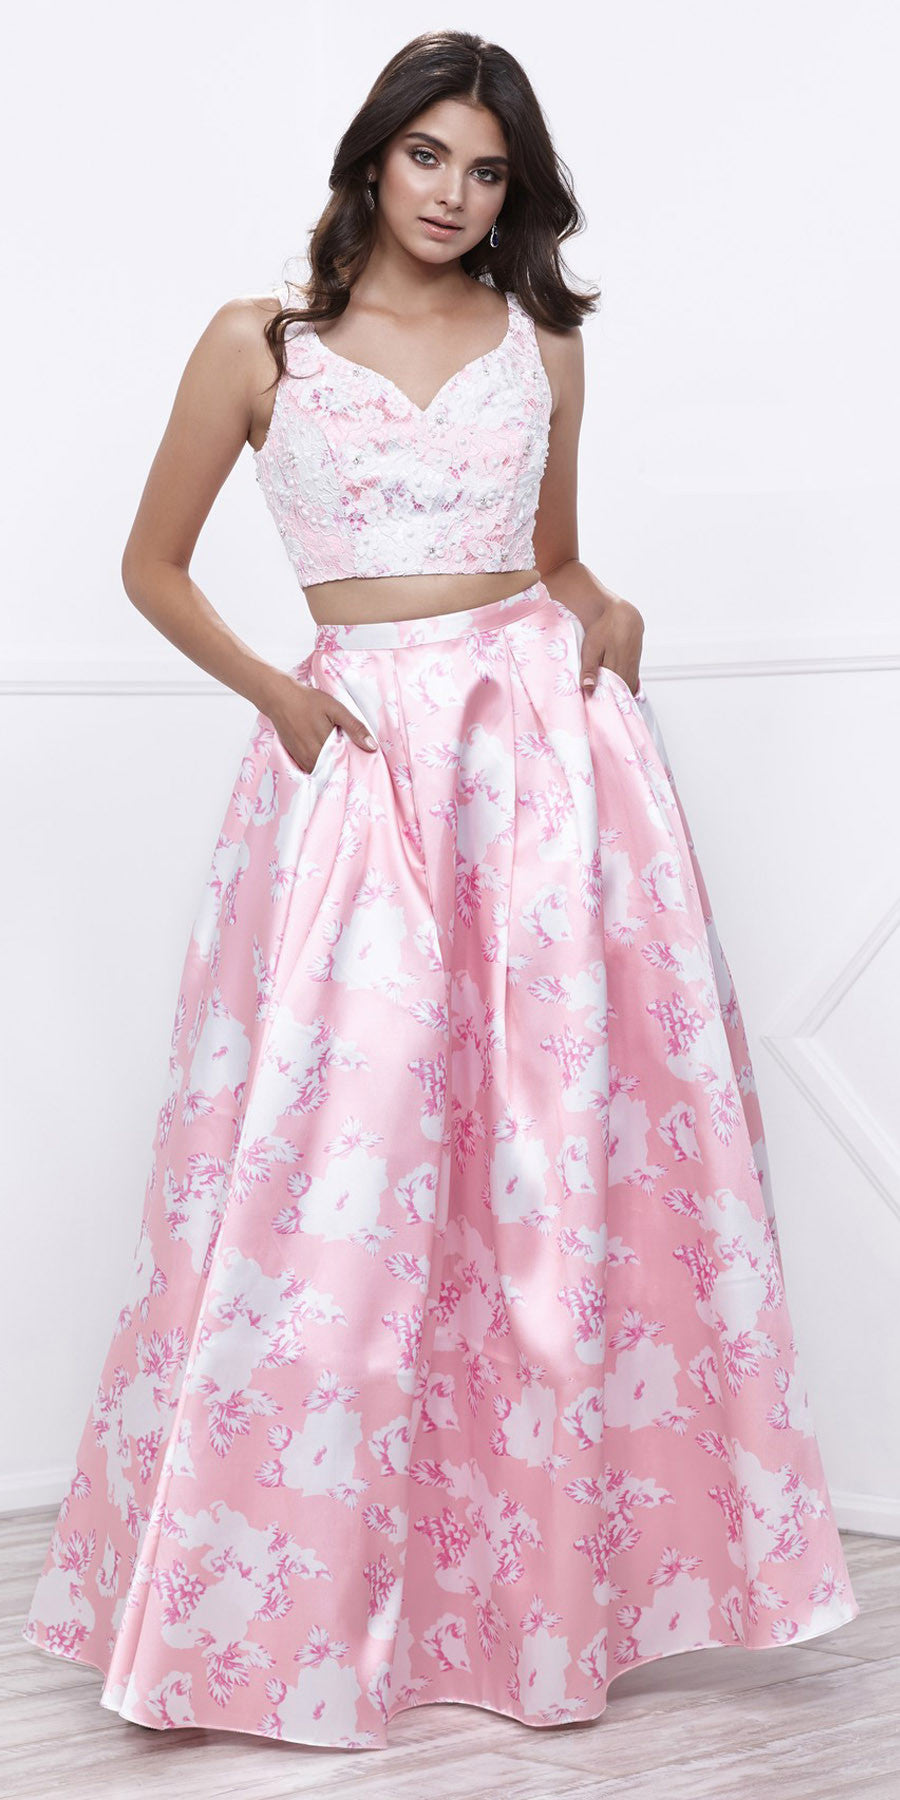 82a2b4f7812d5 Lace Top Satin Floral Printed Skirt Two-Piece Prom Dress Long Pink. Tap to  expand